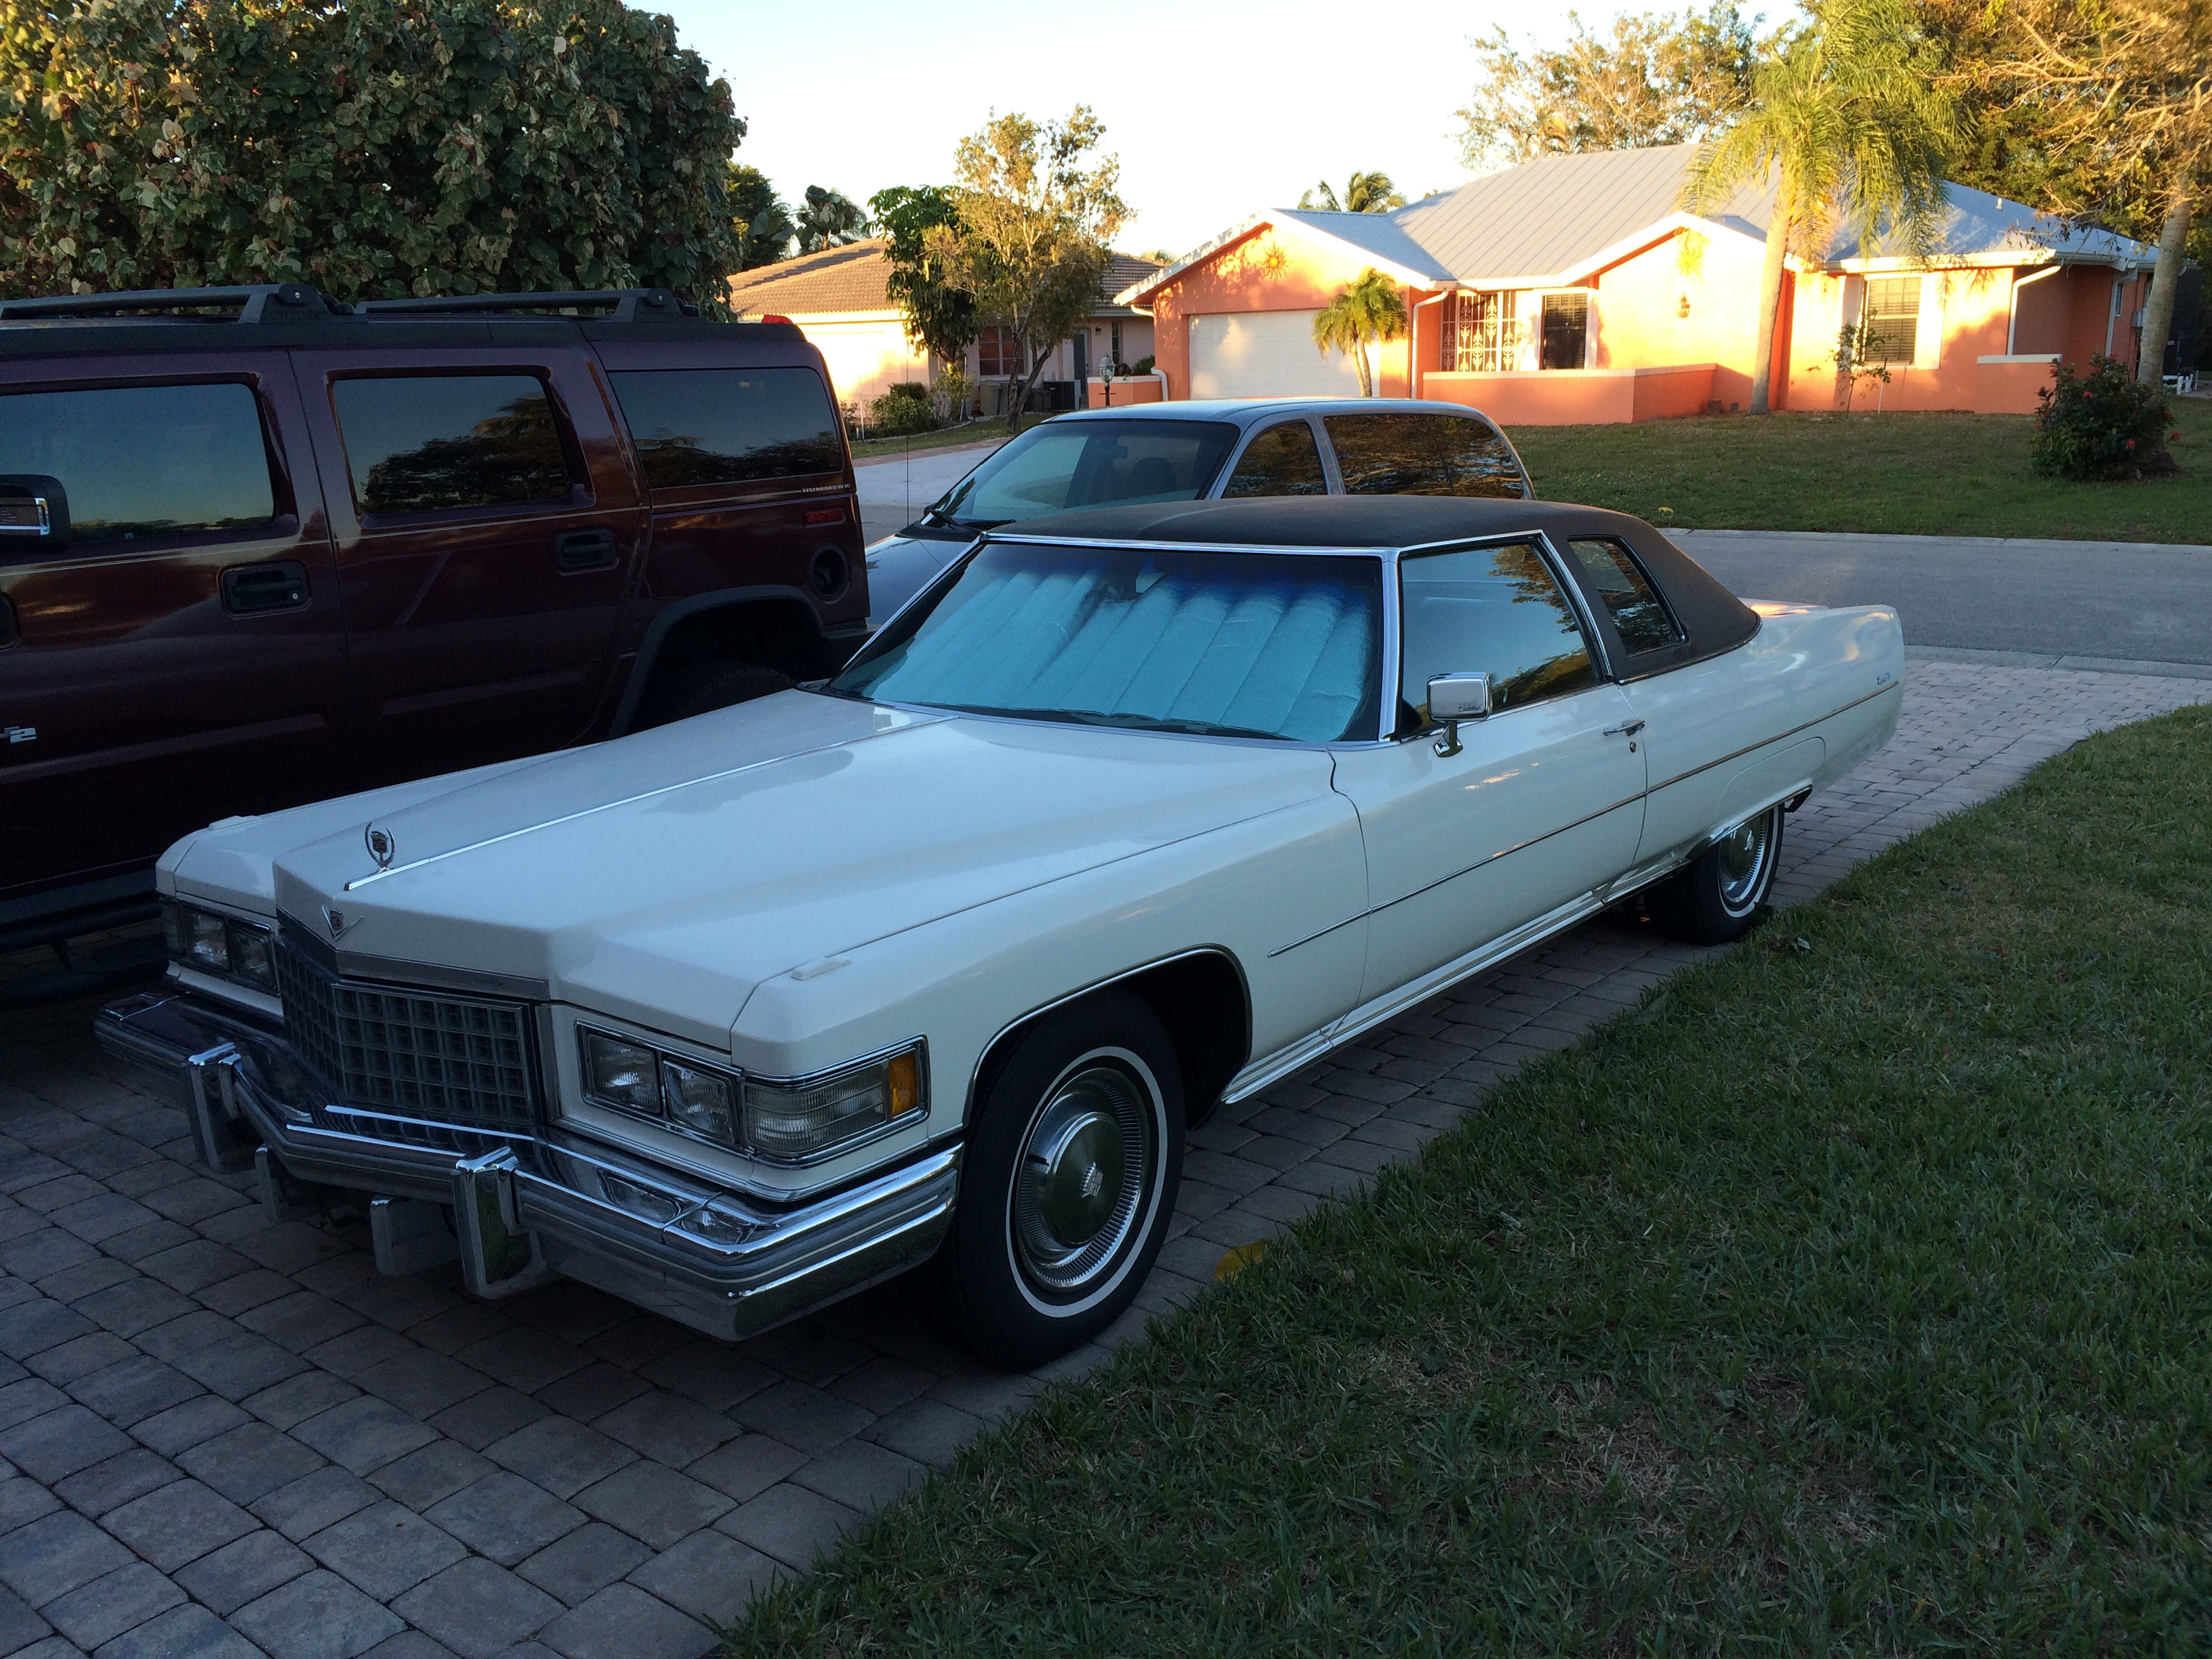 Joe's 1976 Cadillac Coupe deVille